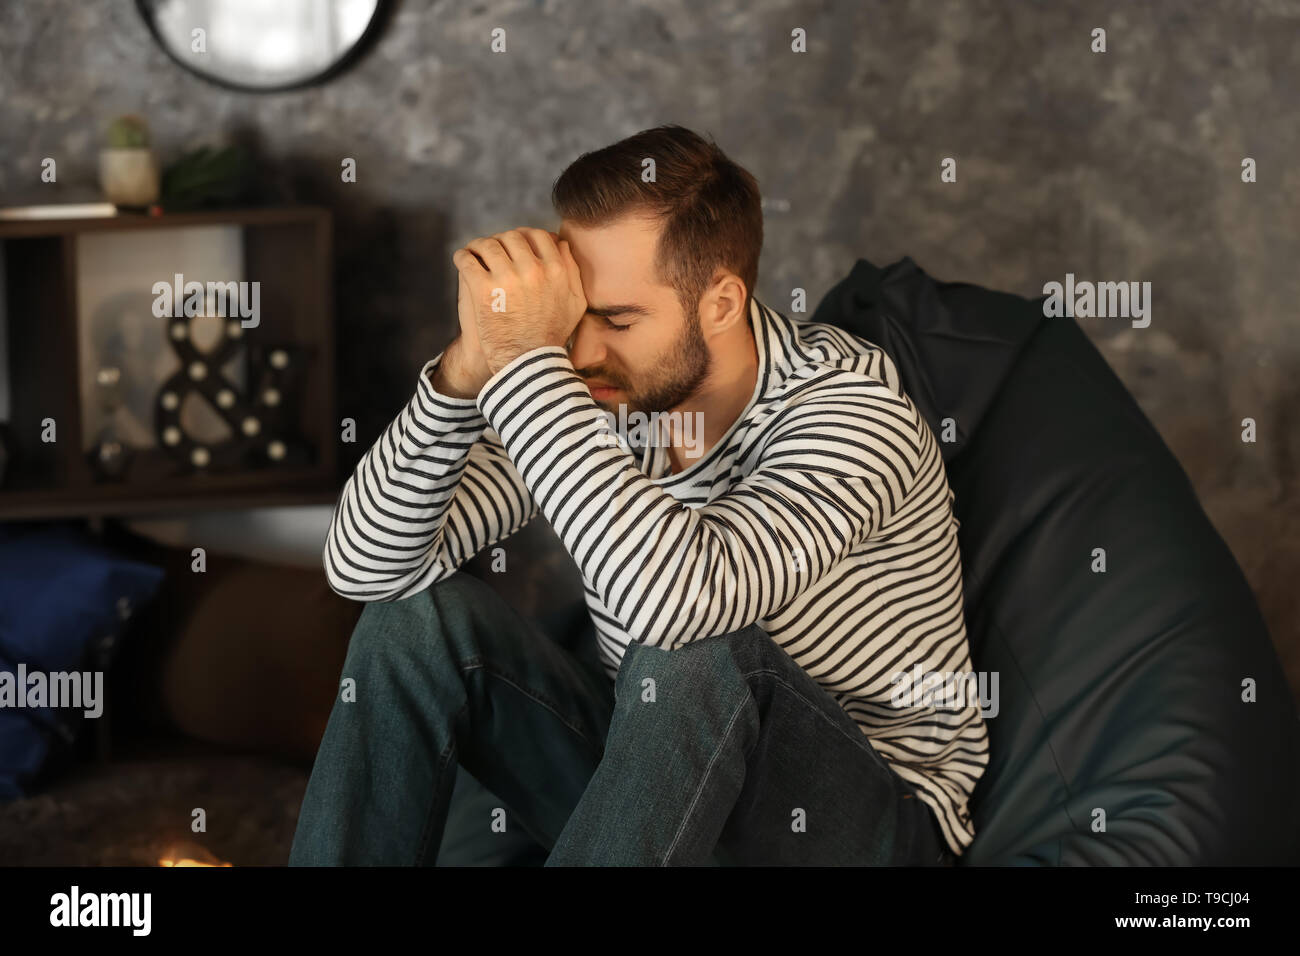 Tired man sitting at home in evening - Stock Image